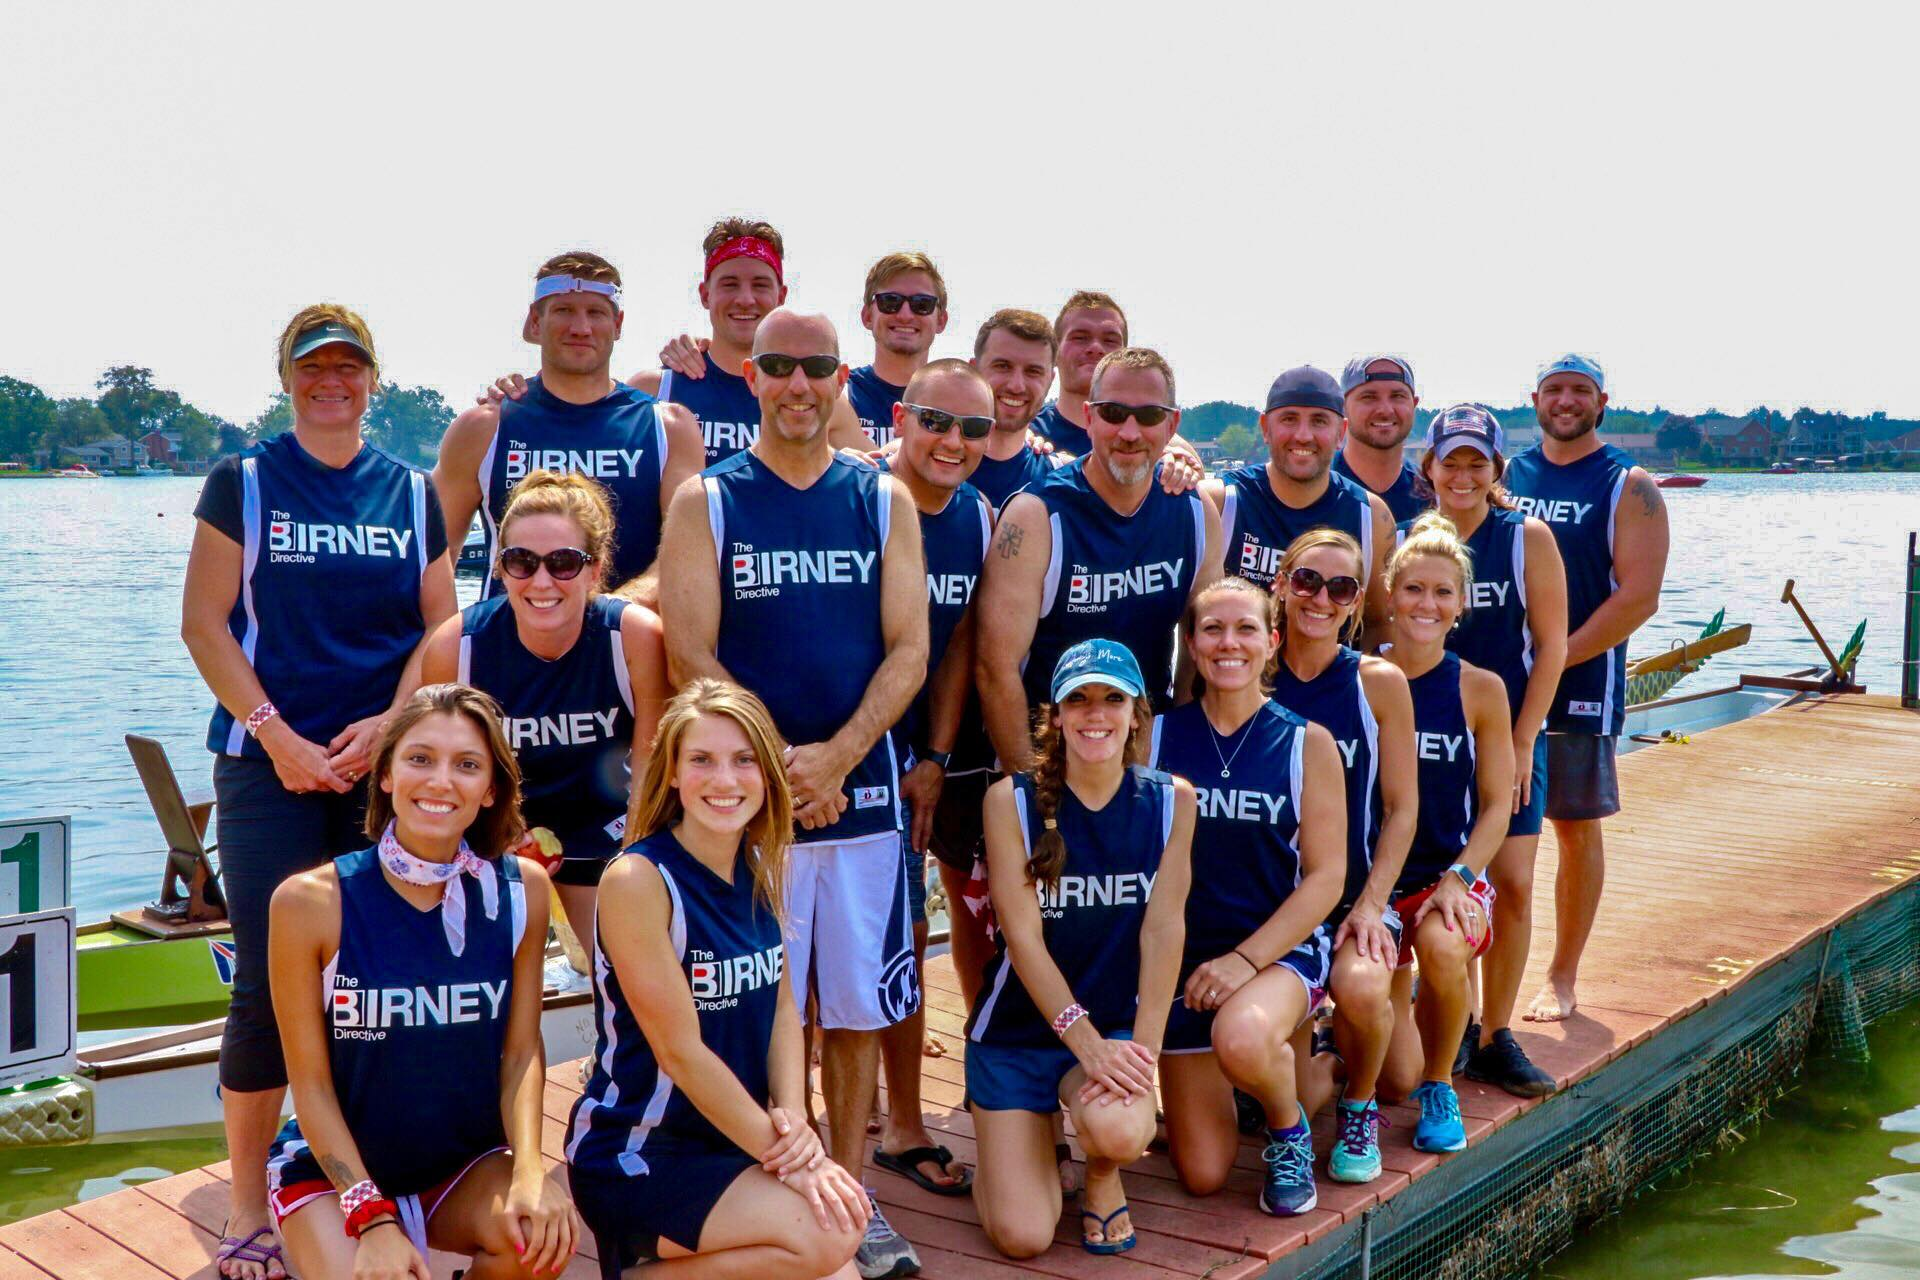 The Birney Directive Dragon Boat Racing Teams poses for a photo at the 2018 Dragon on the Lake Festival. Racers are positioned in three rows on a dock and wearing sleeveless blue muscle shirts.